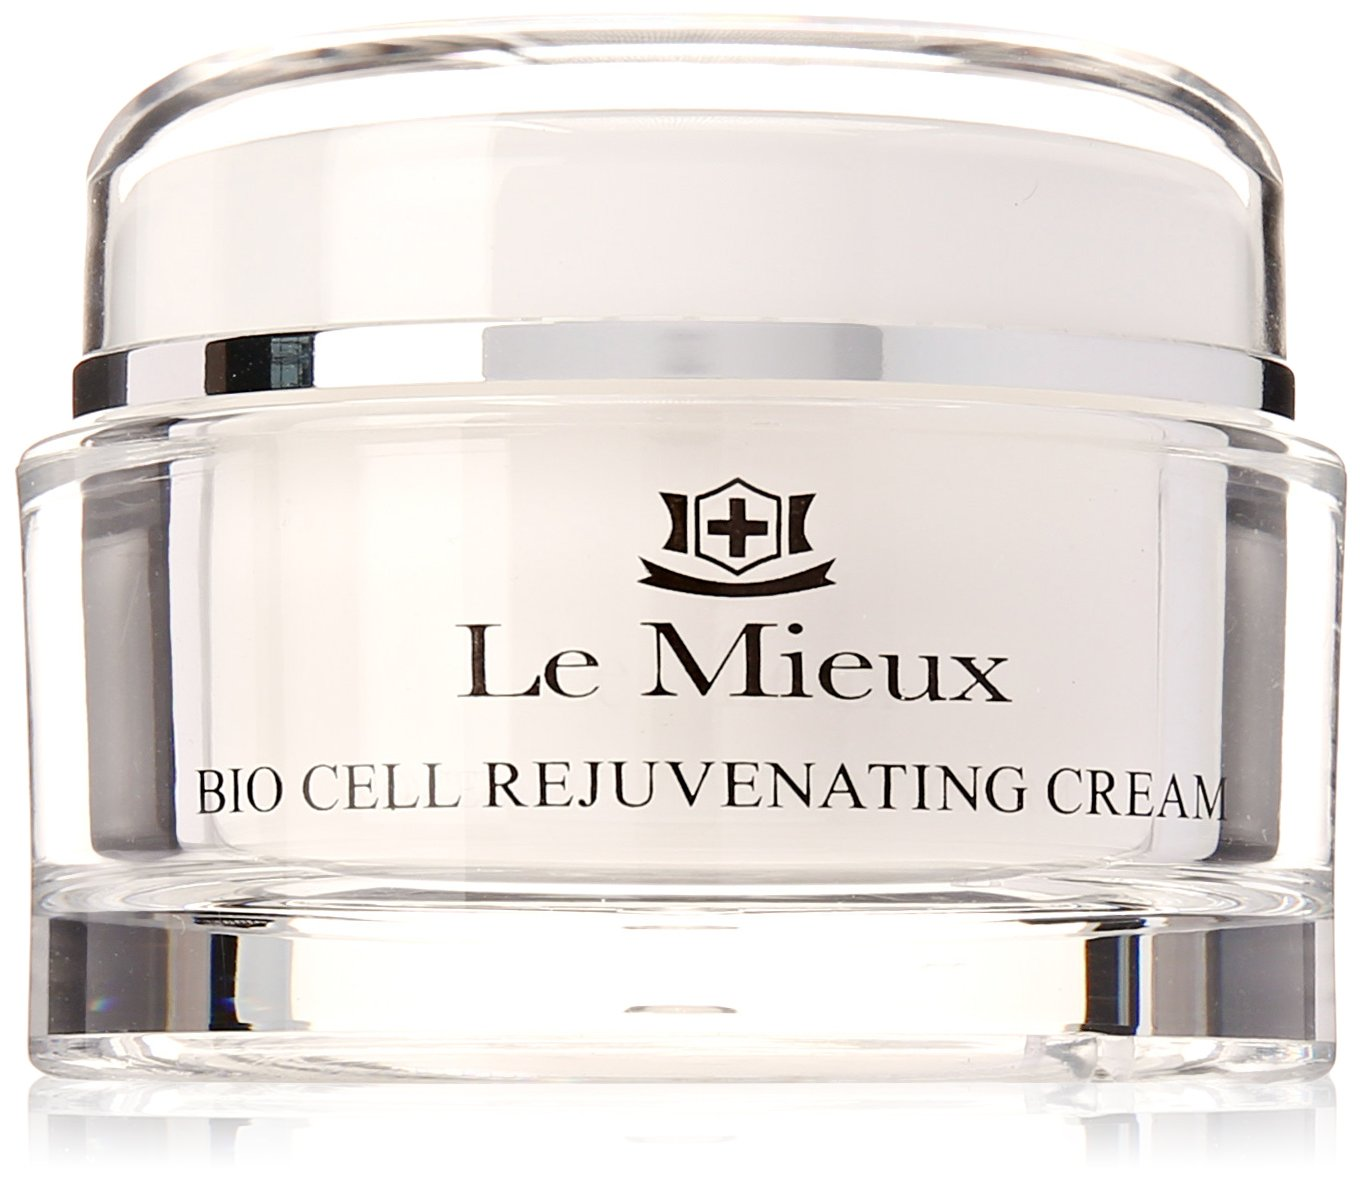 le mieux rx complex serum, 1.0 ounce 4 Pack - Clarins Multi-Active Night Cream Normal to Dry Skin 1.6 oz